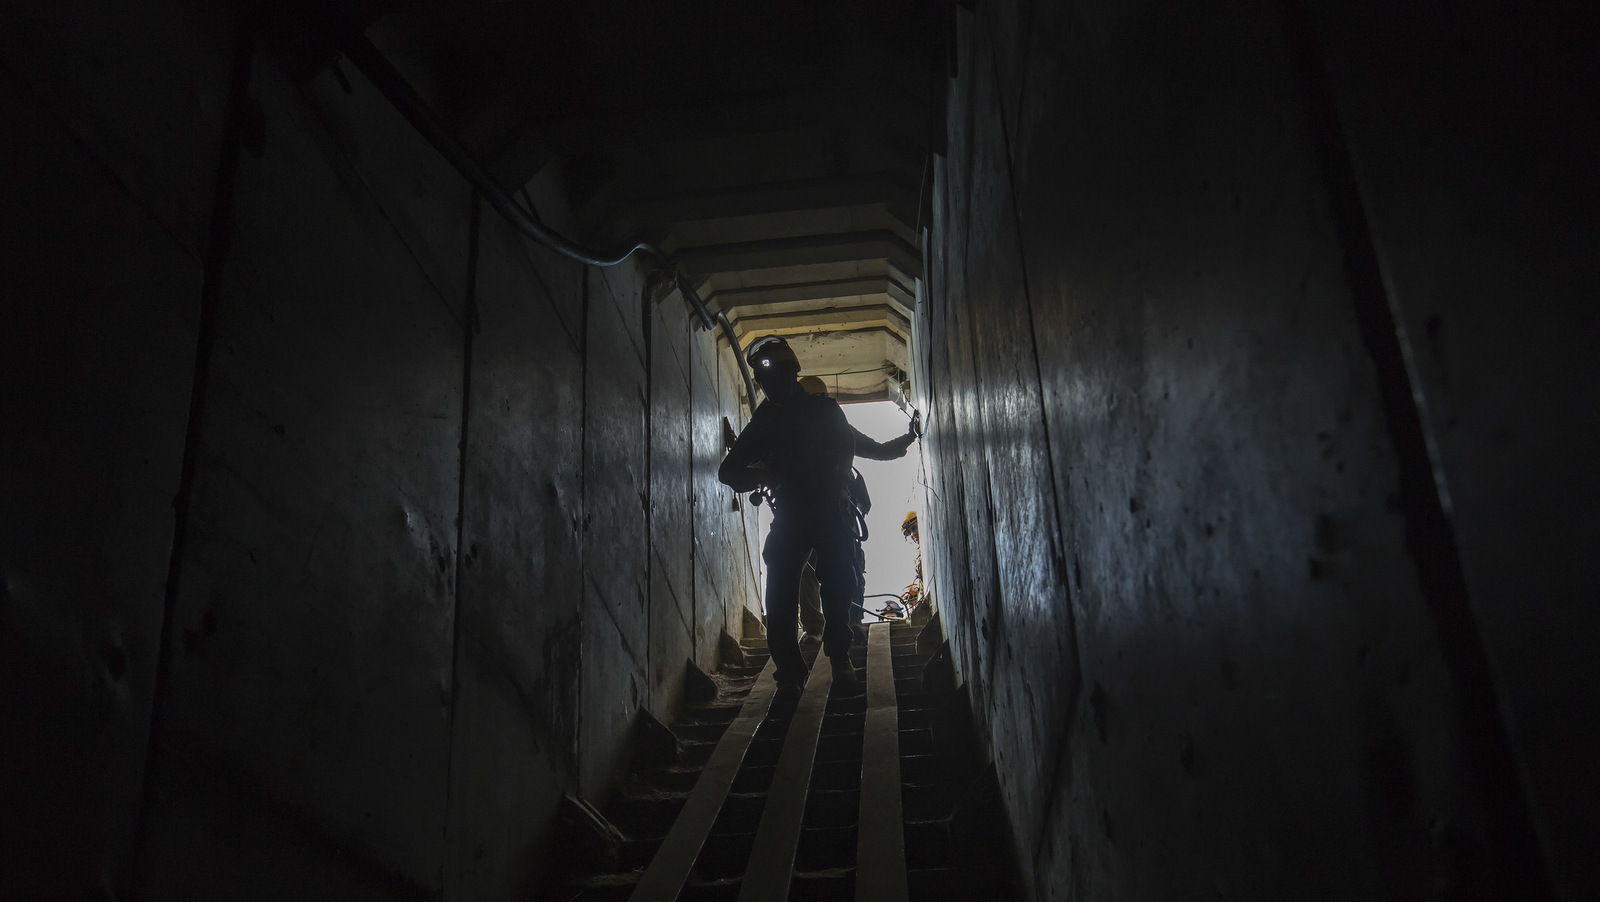 Israeli soldiers from the Home Front Command enter a tunnel, to attend to a soldier acting as a survivor in the smoke and rubble, during an army drill near the Israel Gaza border, Nov. 7, 2016. (AP/Tsafrir Abayov)